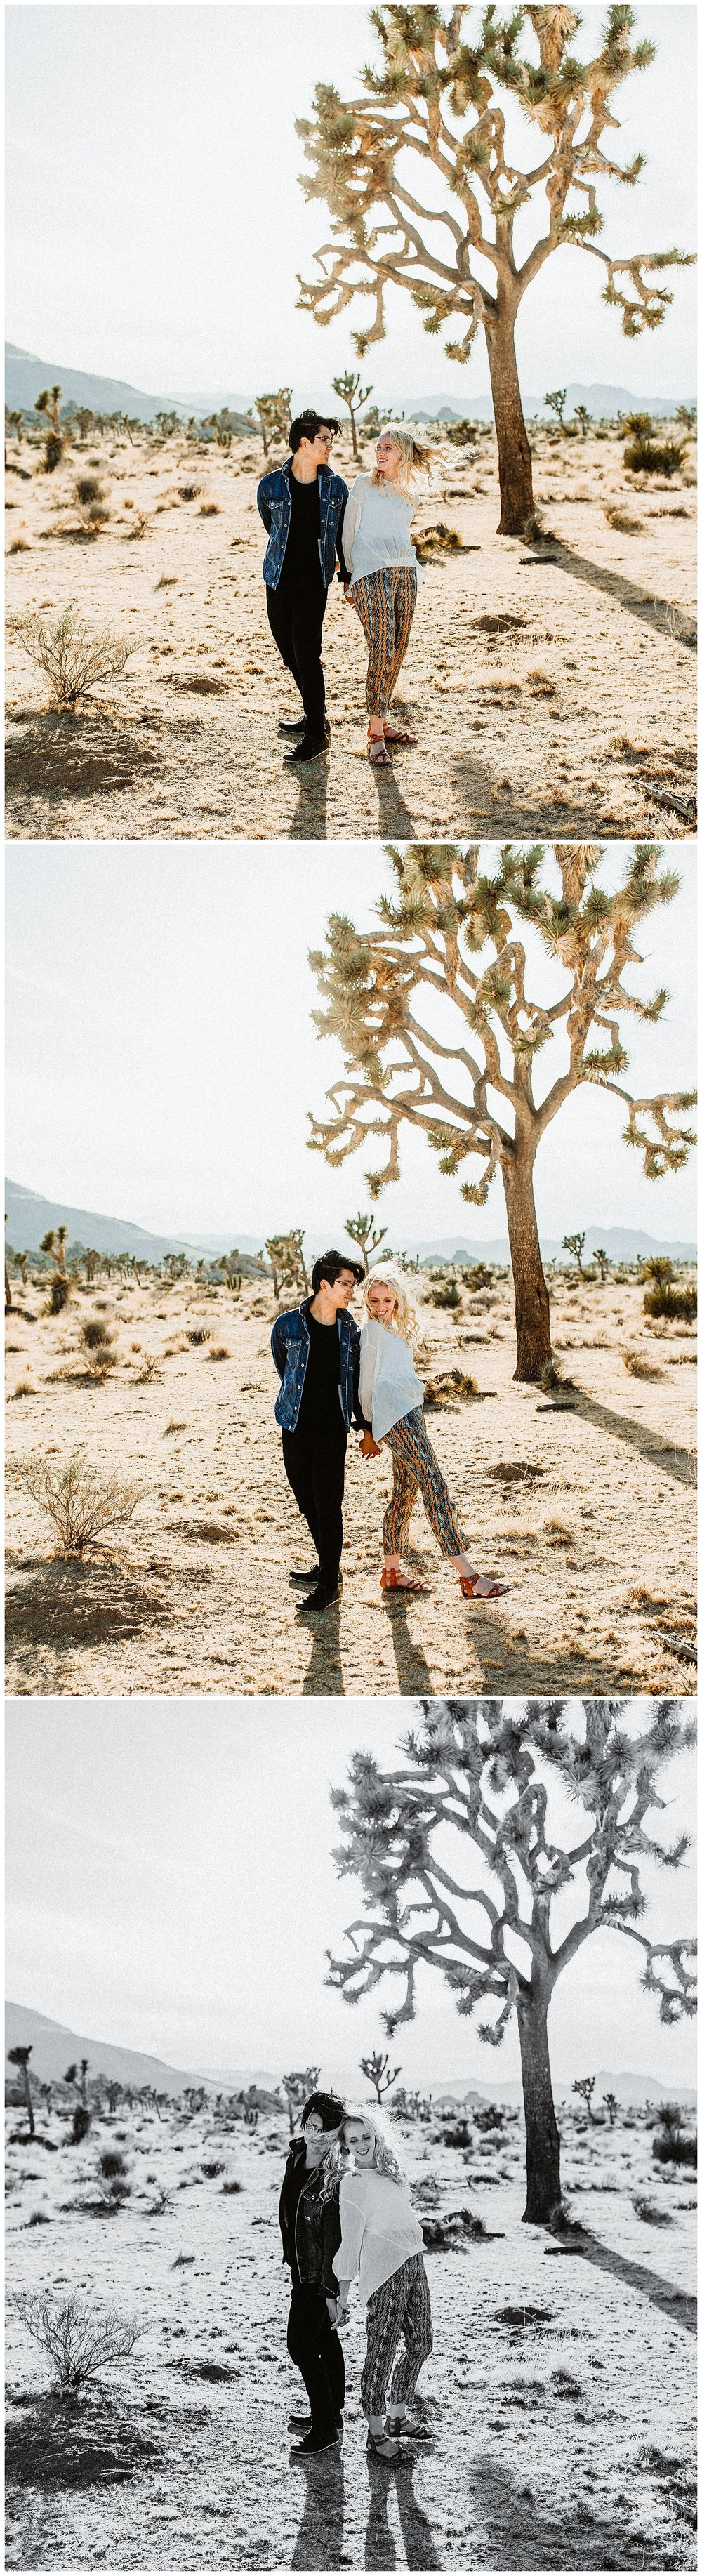 Joshua Tree Engagement Session_0060.jpg